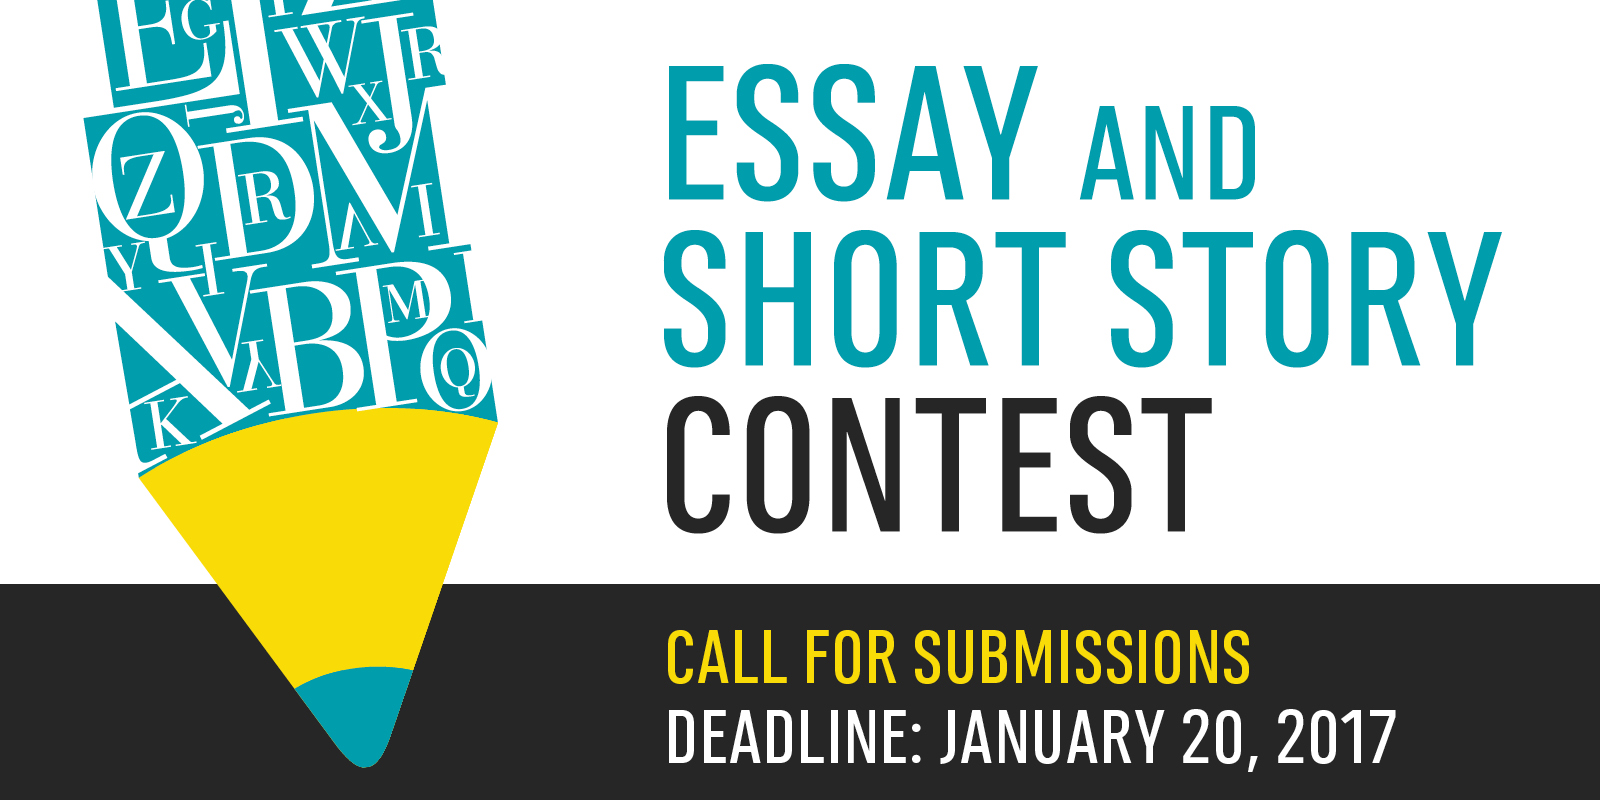 003 Essay Example Writers Writings Urban Partnership Using For College Students Essaycontest Bethmagwe International Competition Amazing Contest Writing High School Contests Seniors 2018 Full